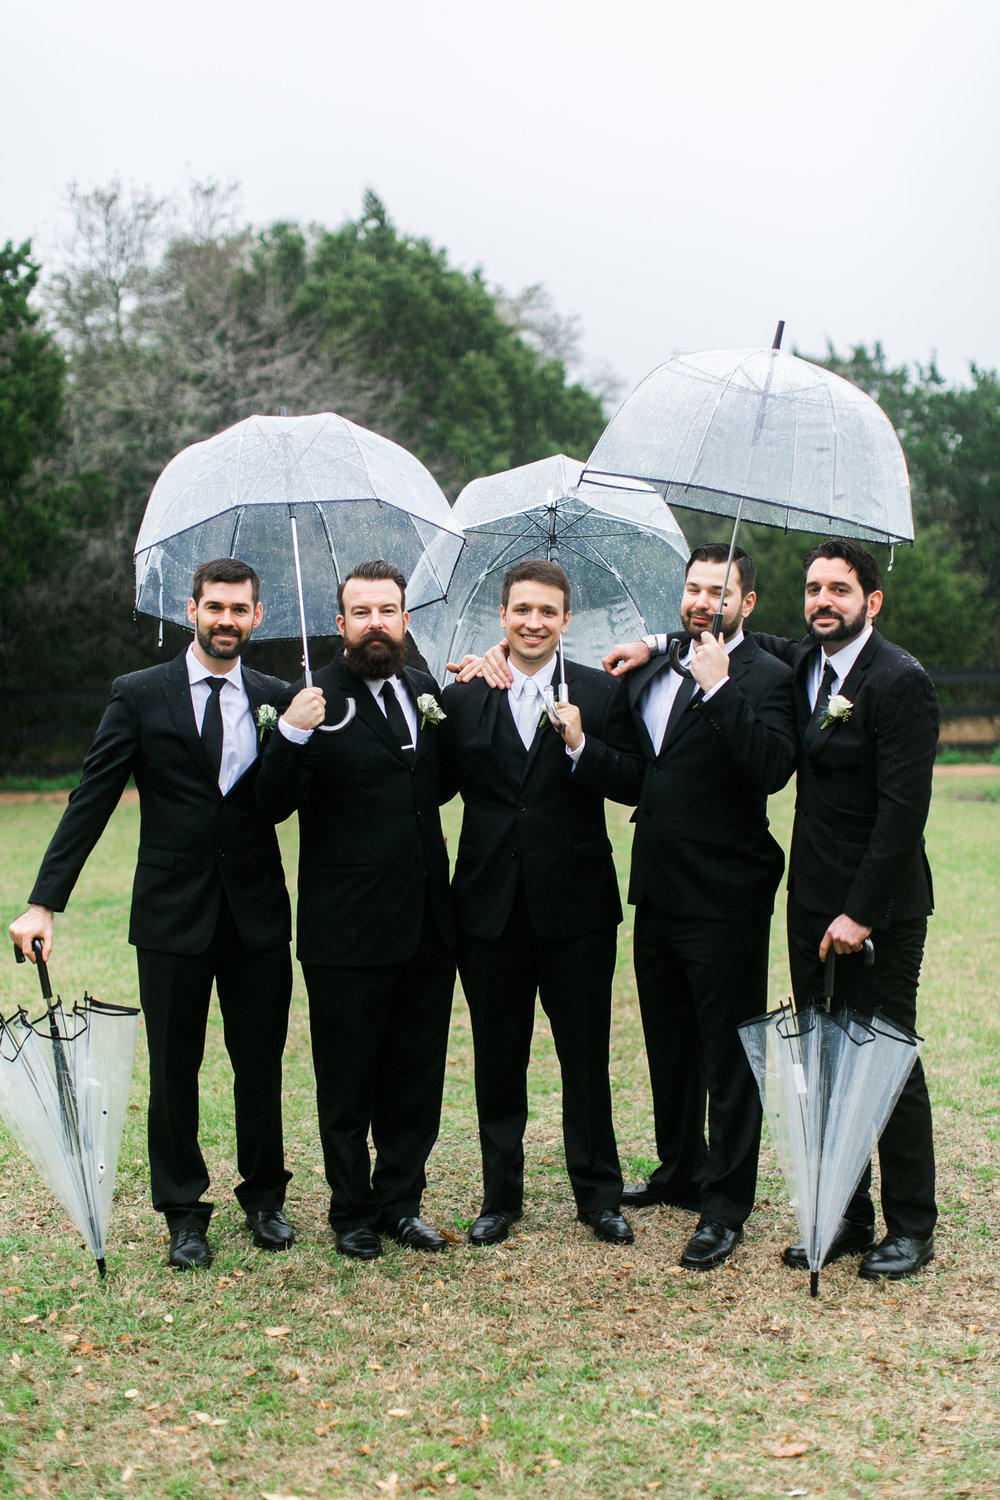 Austin_Texas_Fine_Art_Wedding_Photographer_Kayla_Snell_Photography_Antebellum_Oaks316.jpg